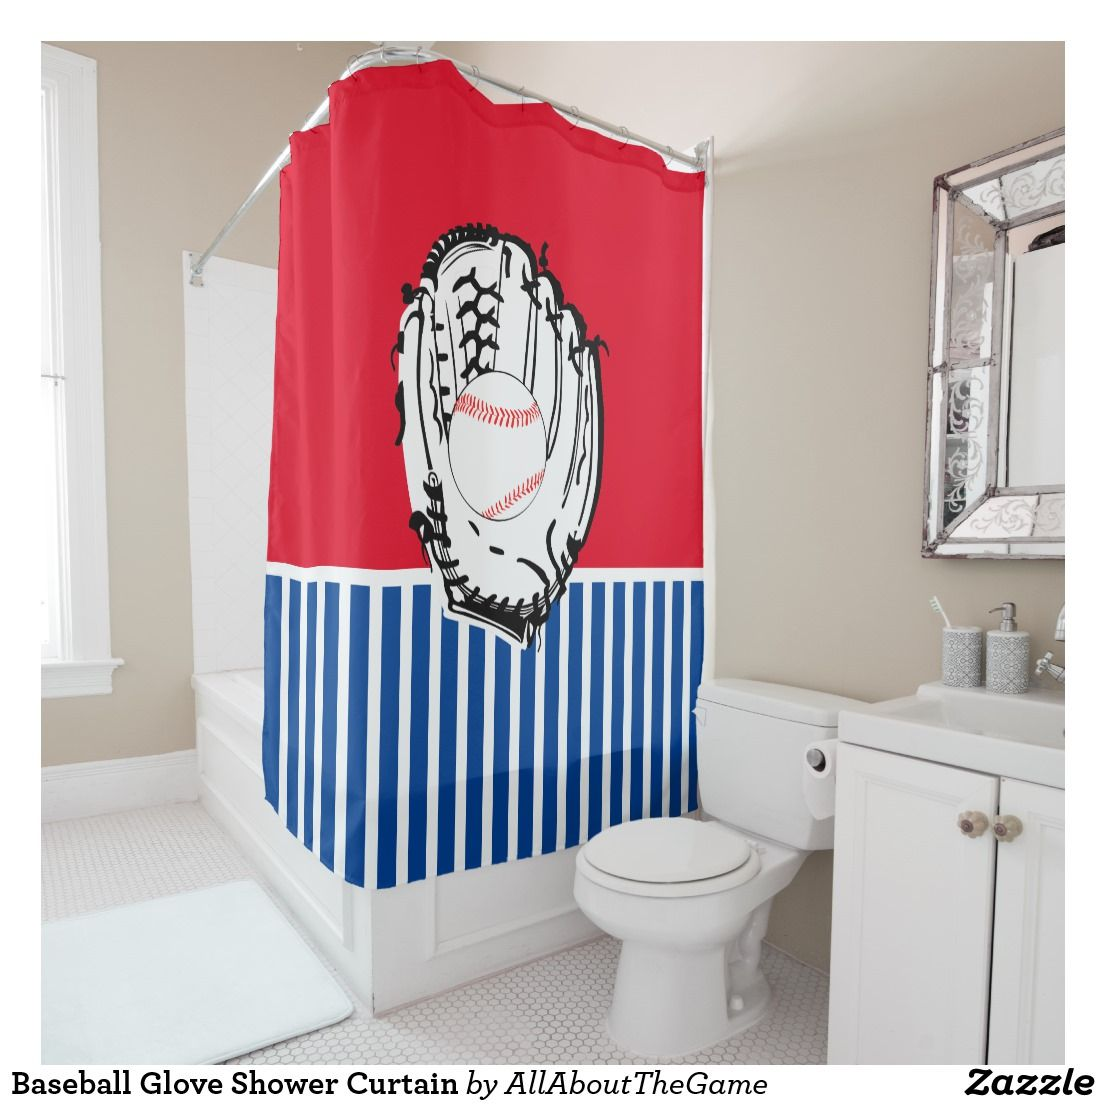 Baseball Glove Shower Curtain Zazzle Com In 2020 Baseball